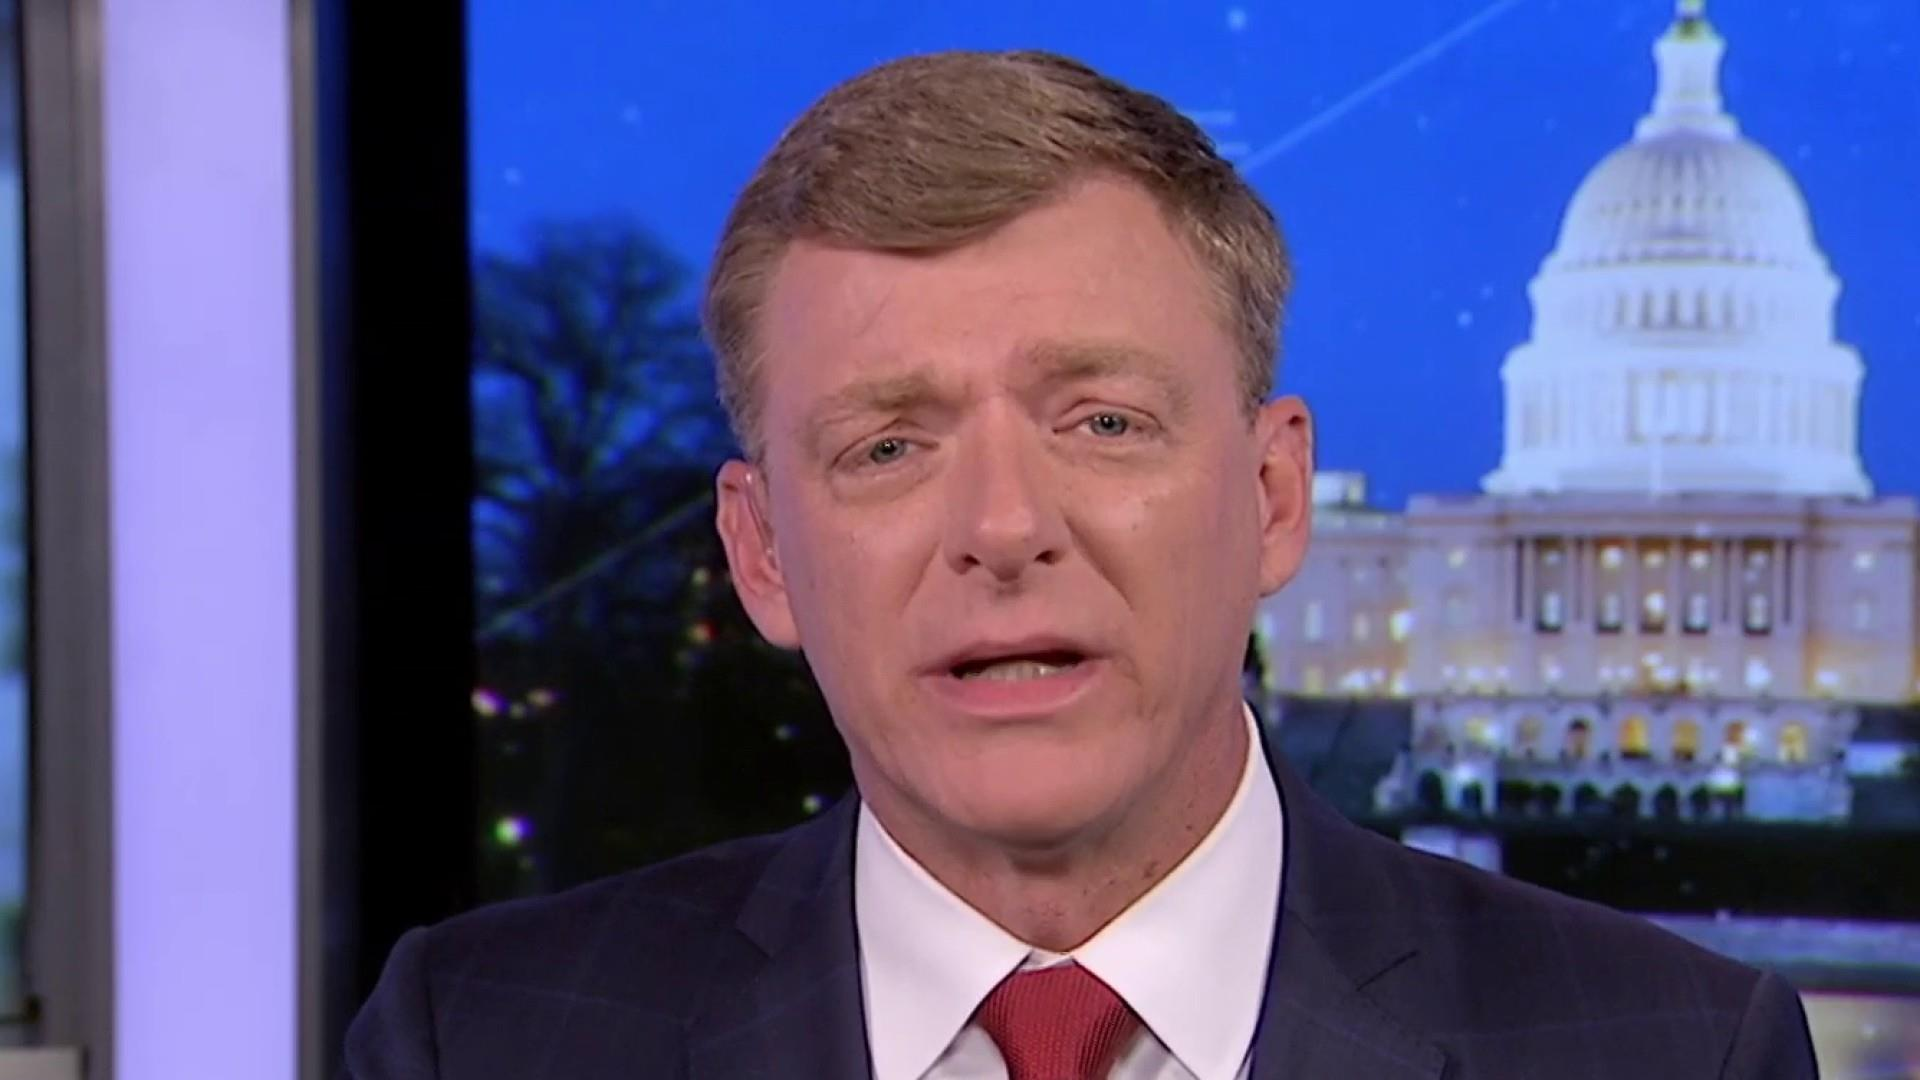 Lotter: 'Let's work with the House' on replacing Obamacare